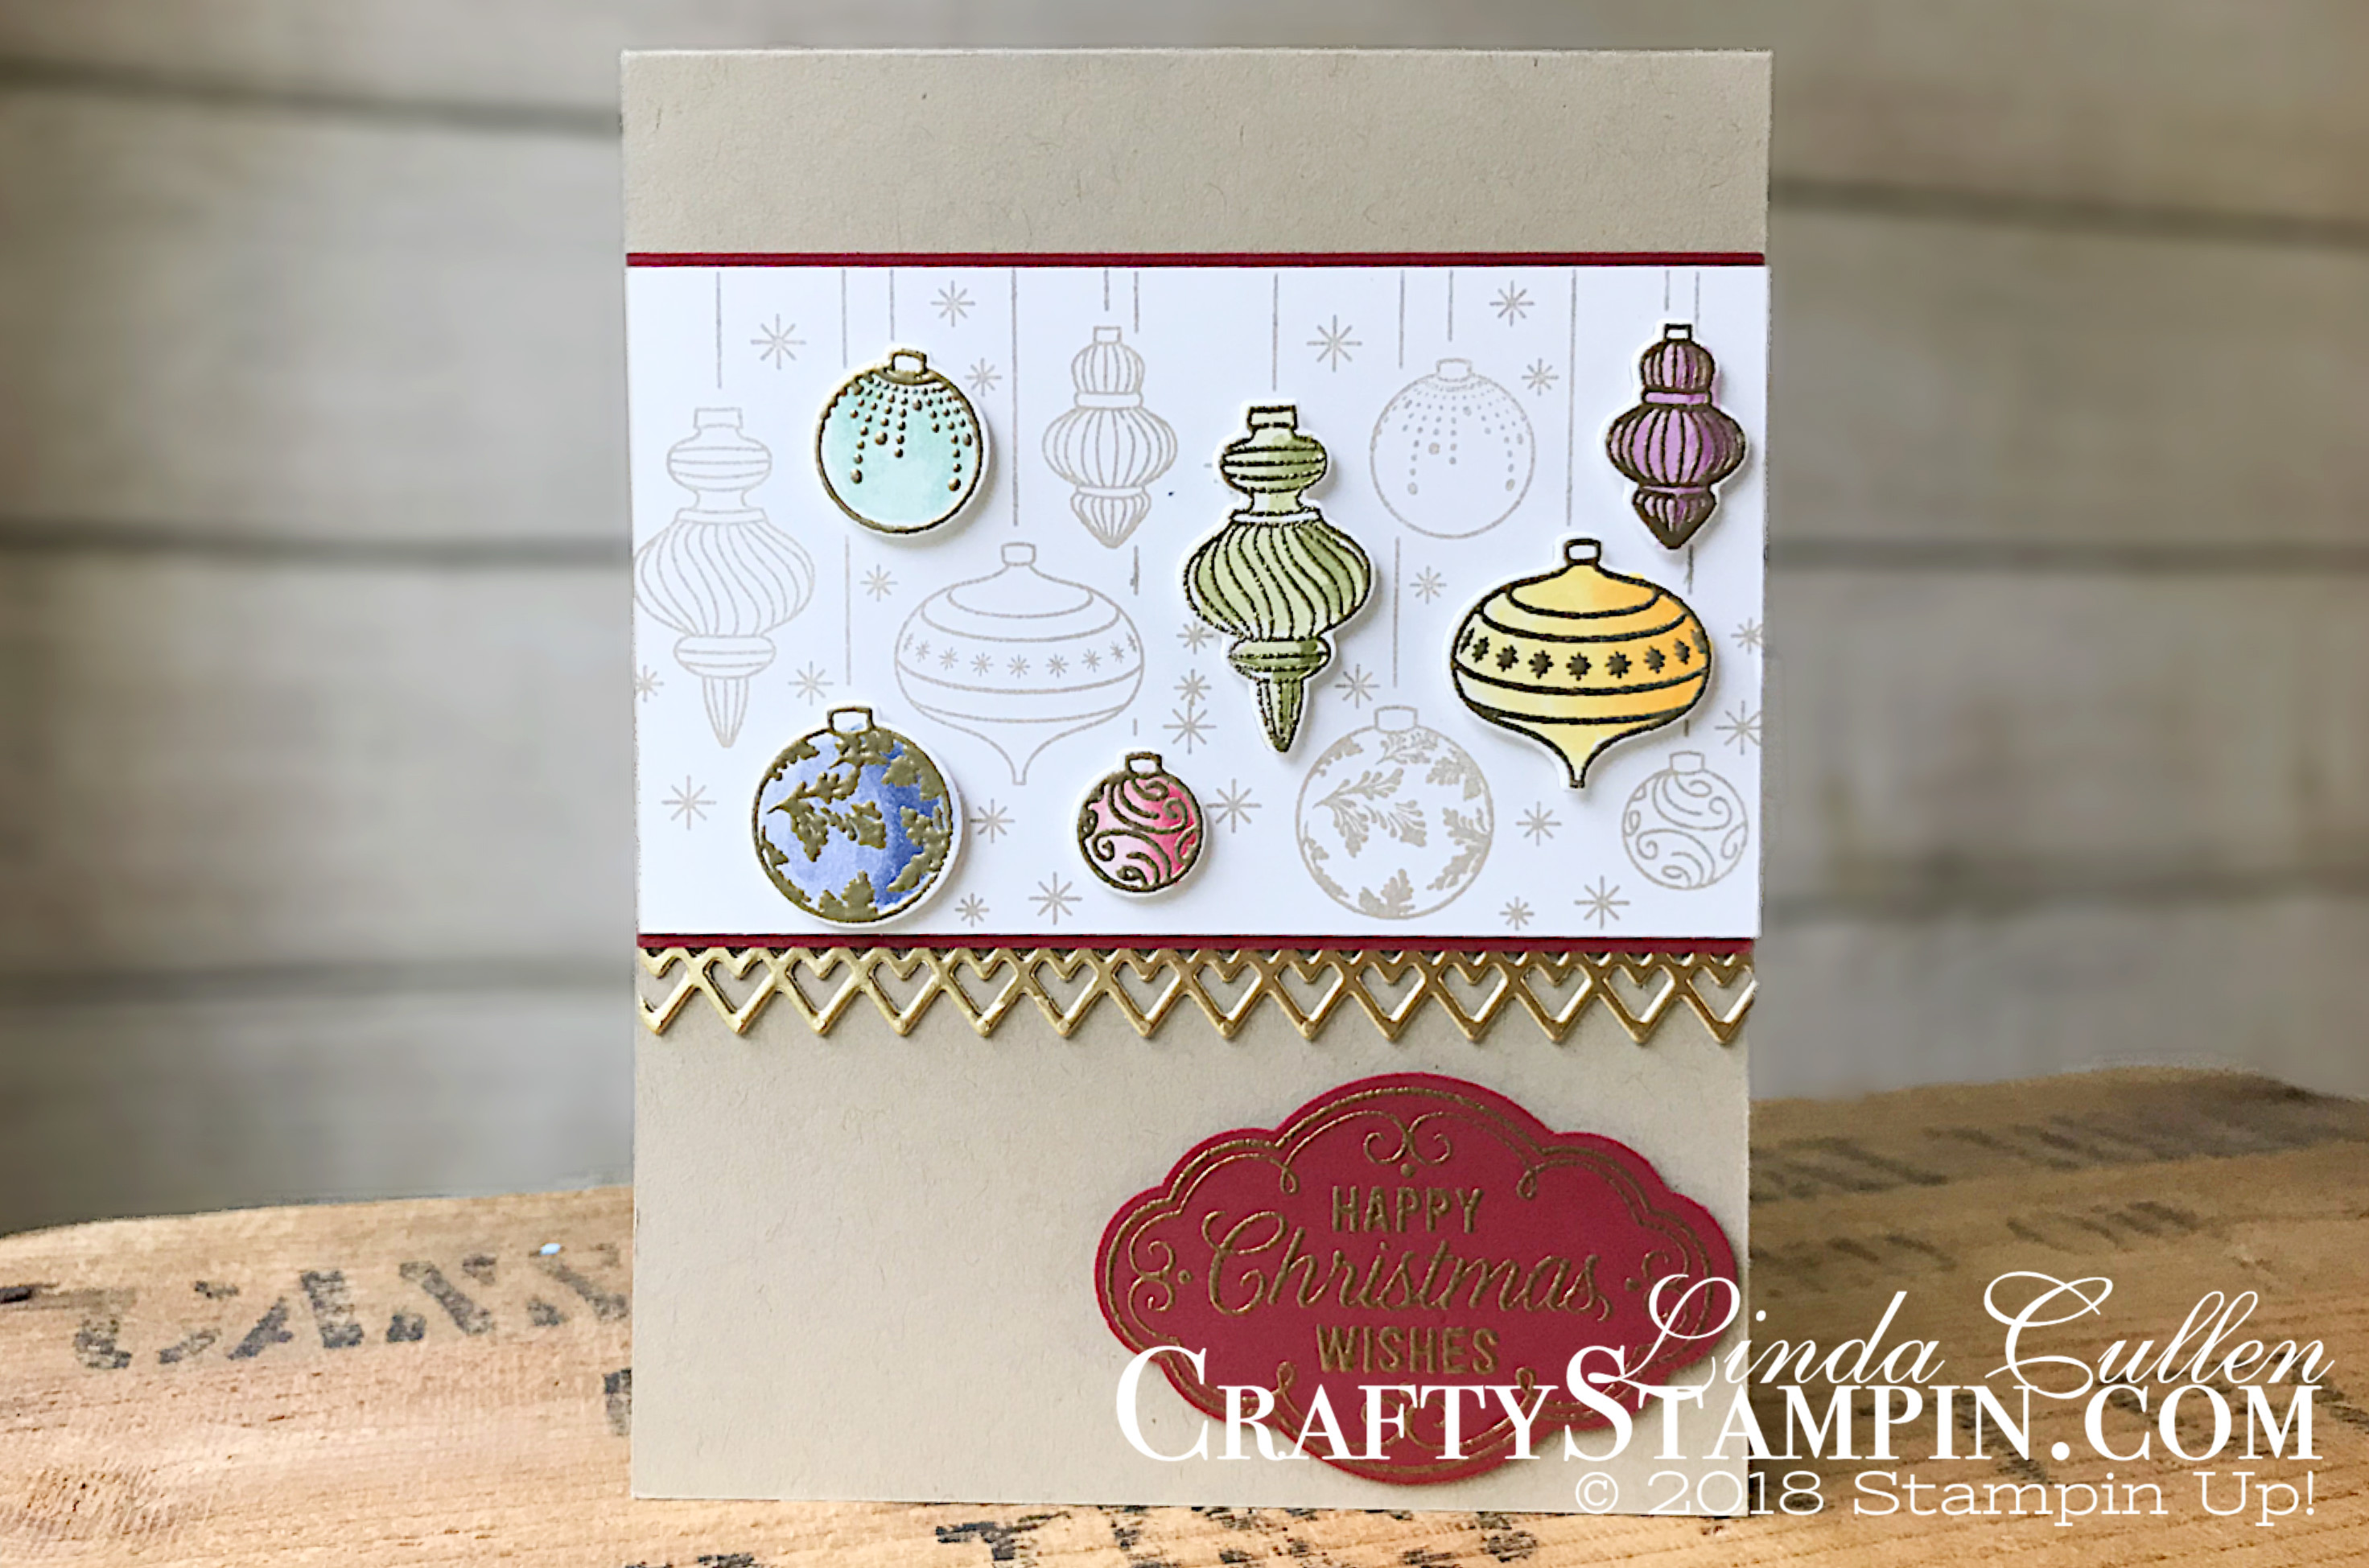 Home Crafty Stampin